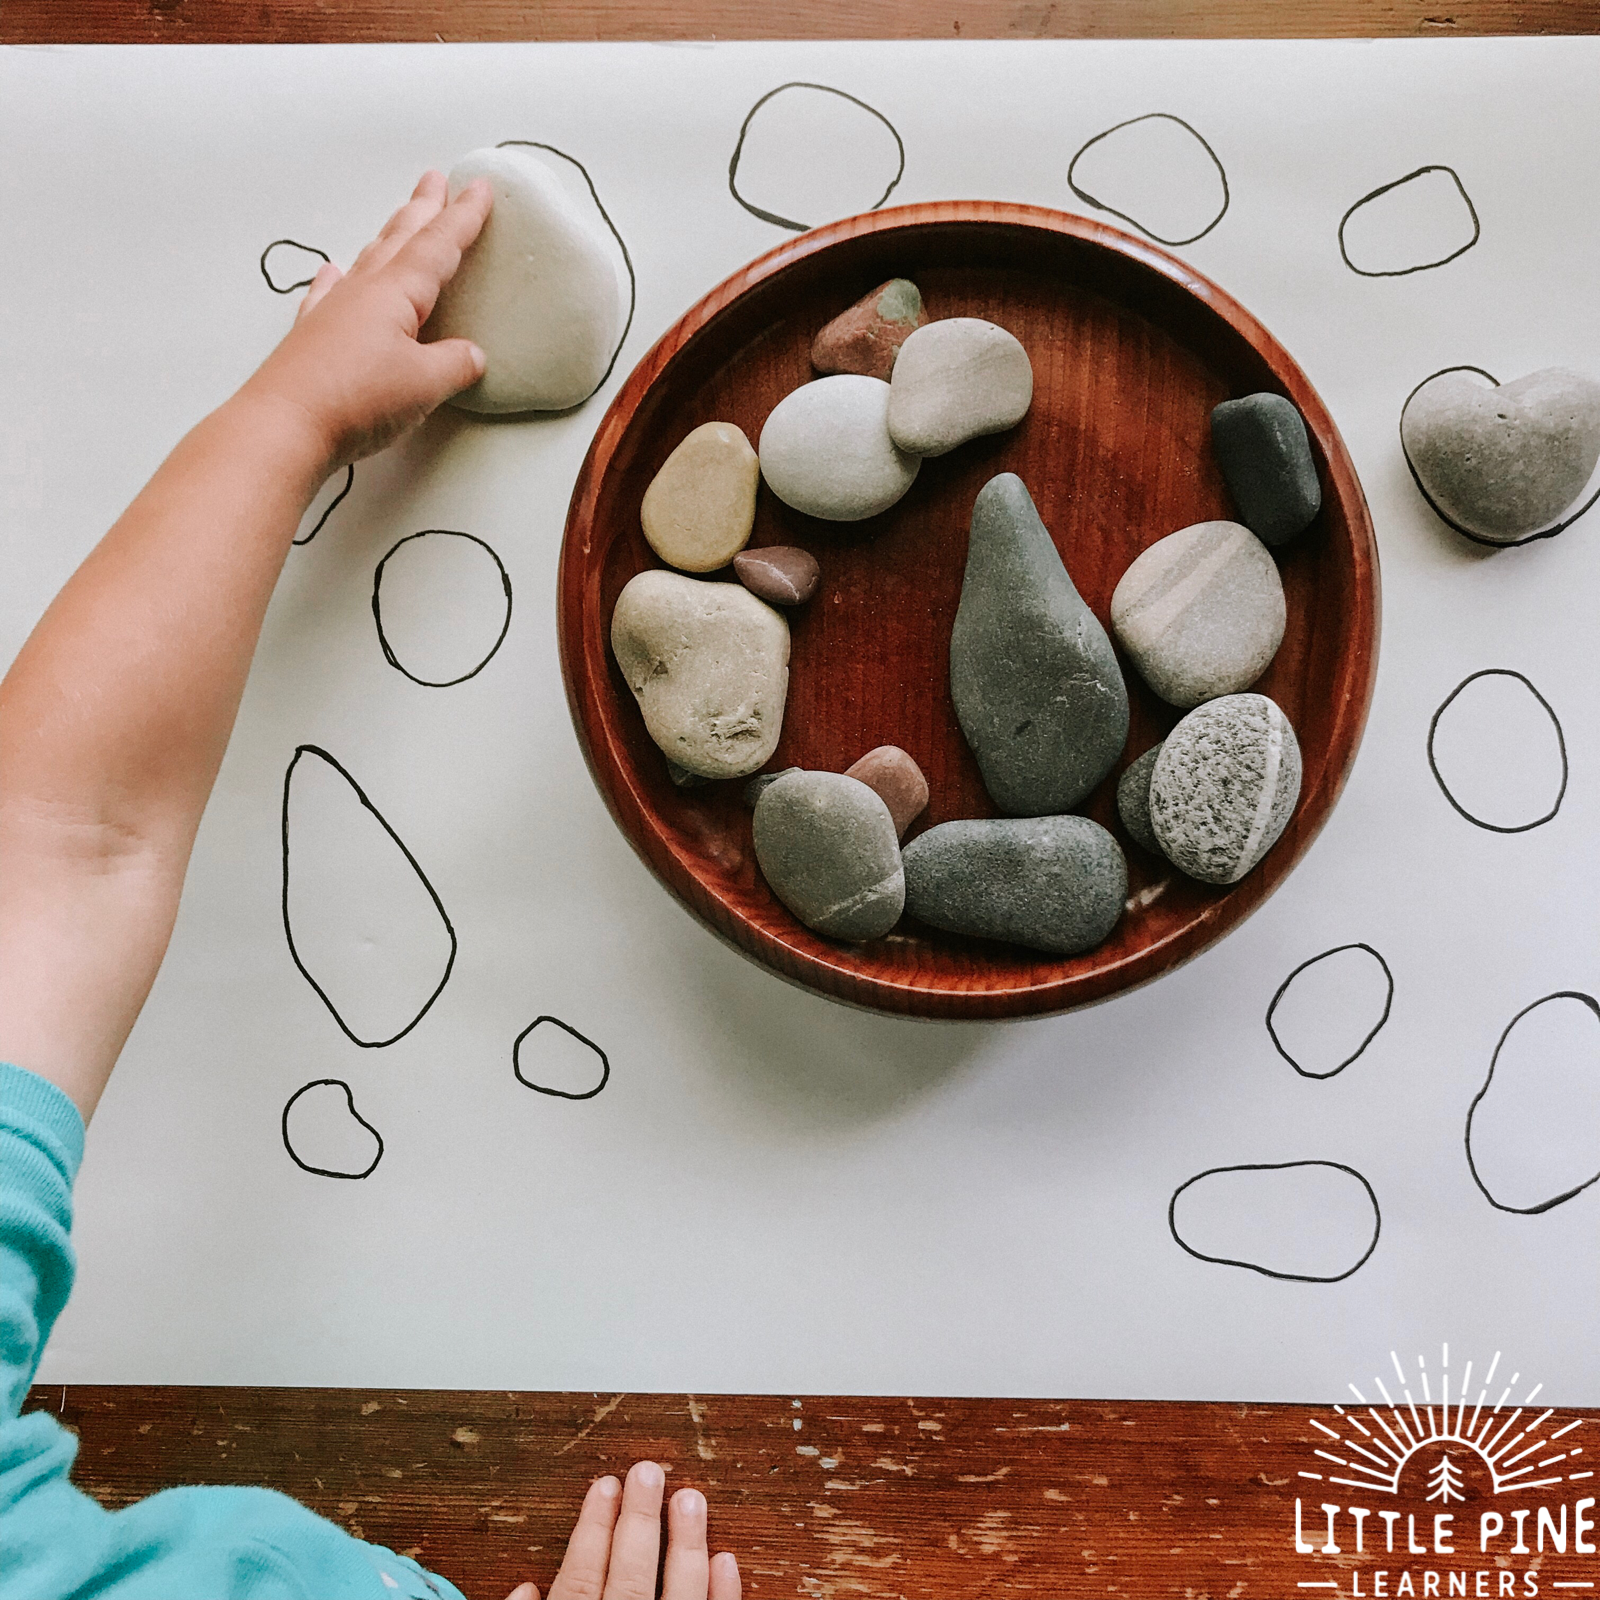 Try this simple stone matching game today! This game will give your child the opportunity to practice using new vocabulary words, compare different sizes and shapes, strengthen fine motor skills, and appreciate nature in a new way!